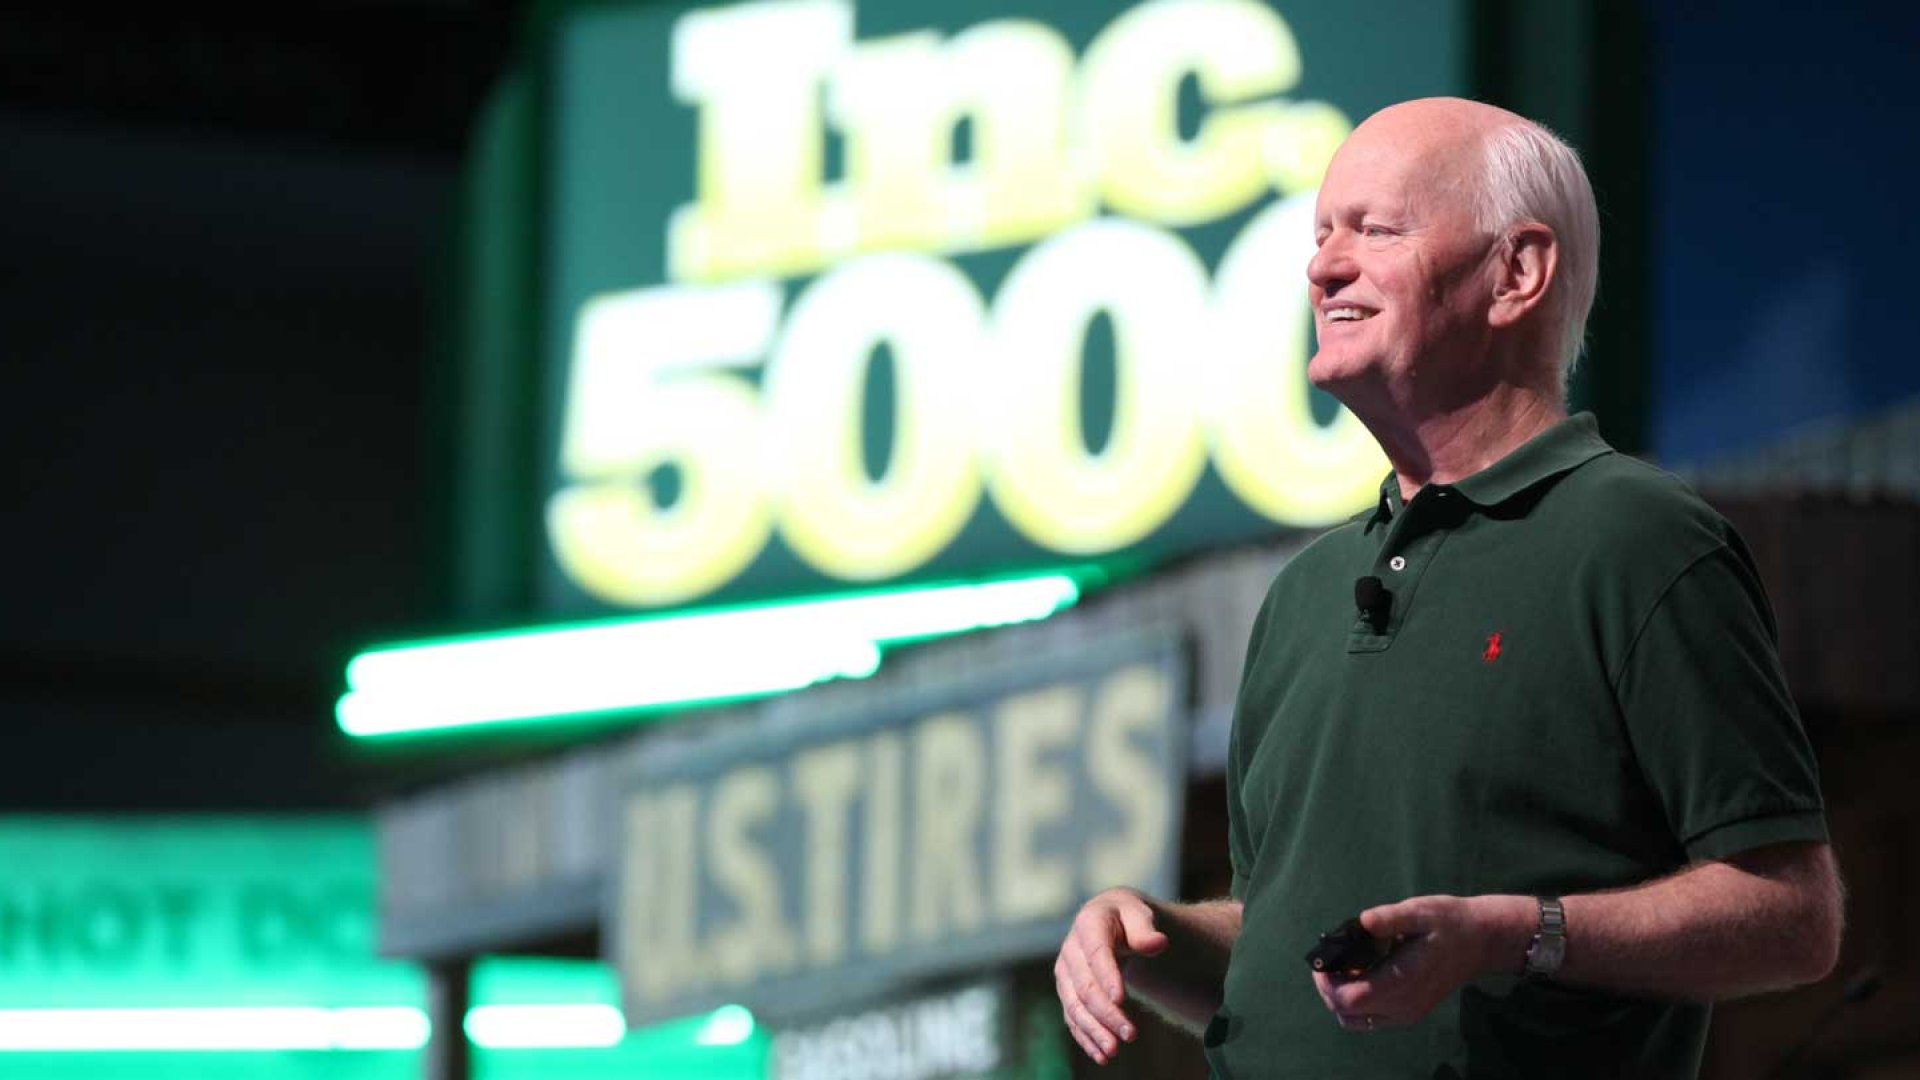 Marshall Goldsmith, executive coach and author, speaks at the 2014 Inc. 5000 conference on October 17th.